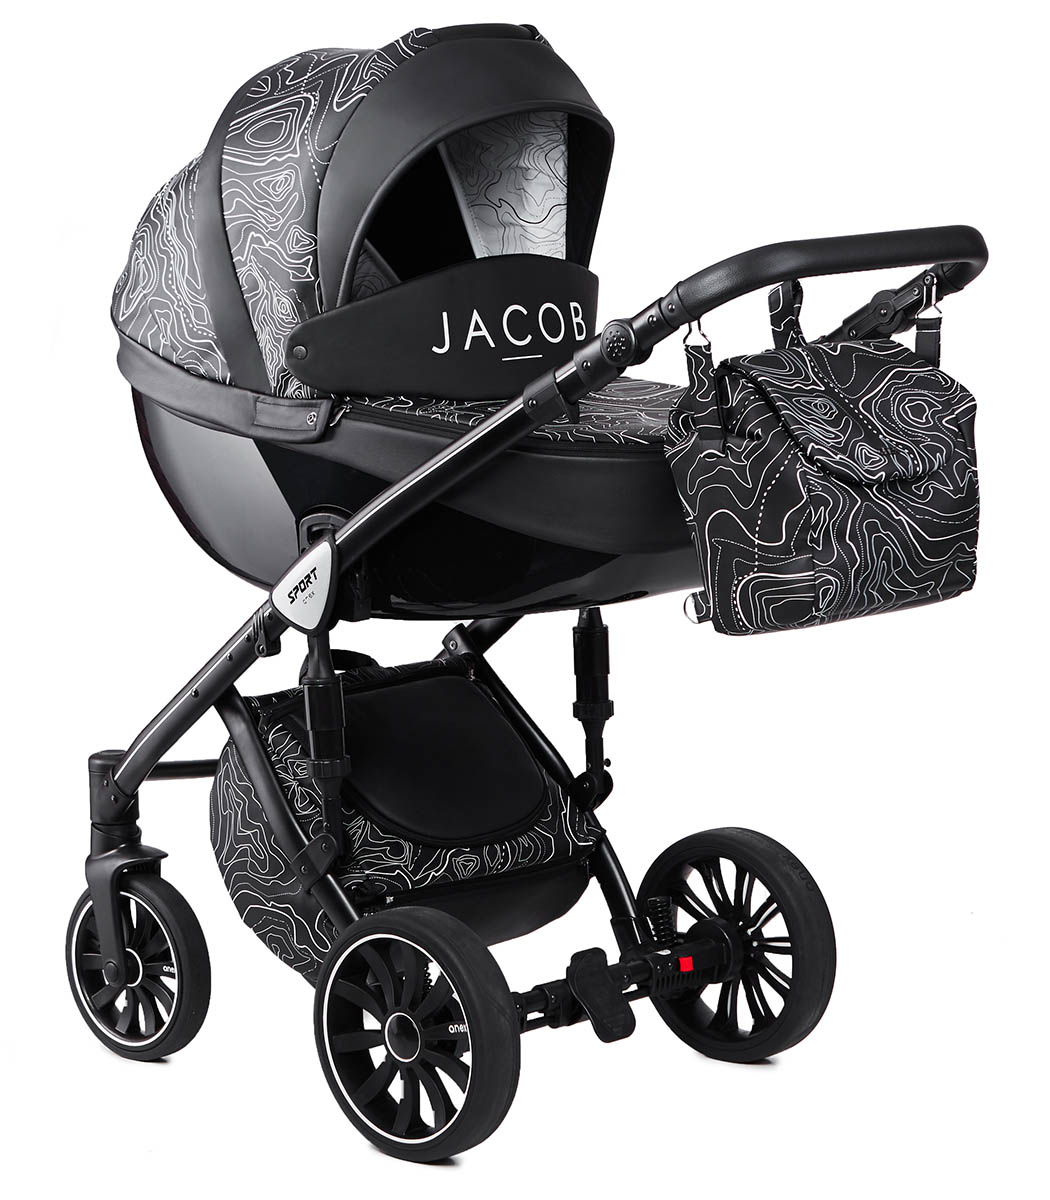 PPG4KIDS Anex Sport Jacob Travel system 2in1 / 3in1 – Preview